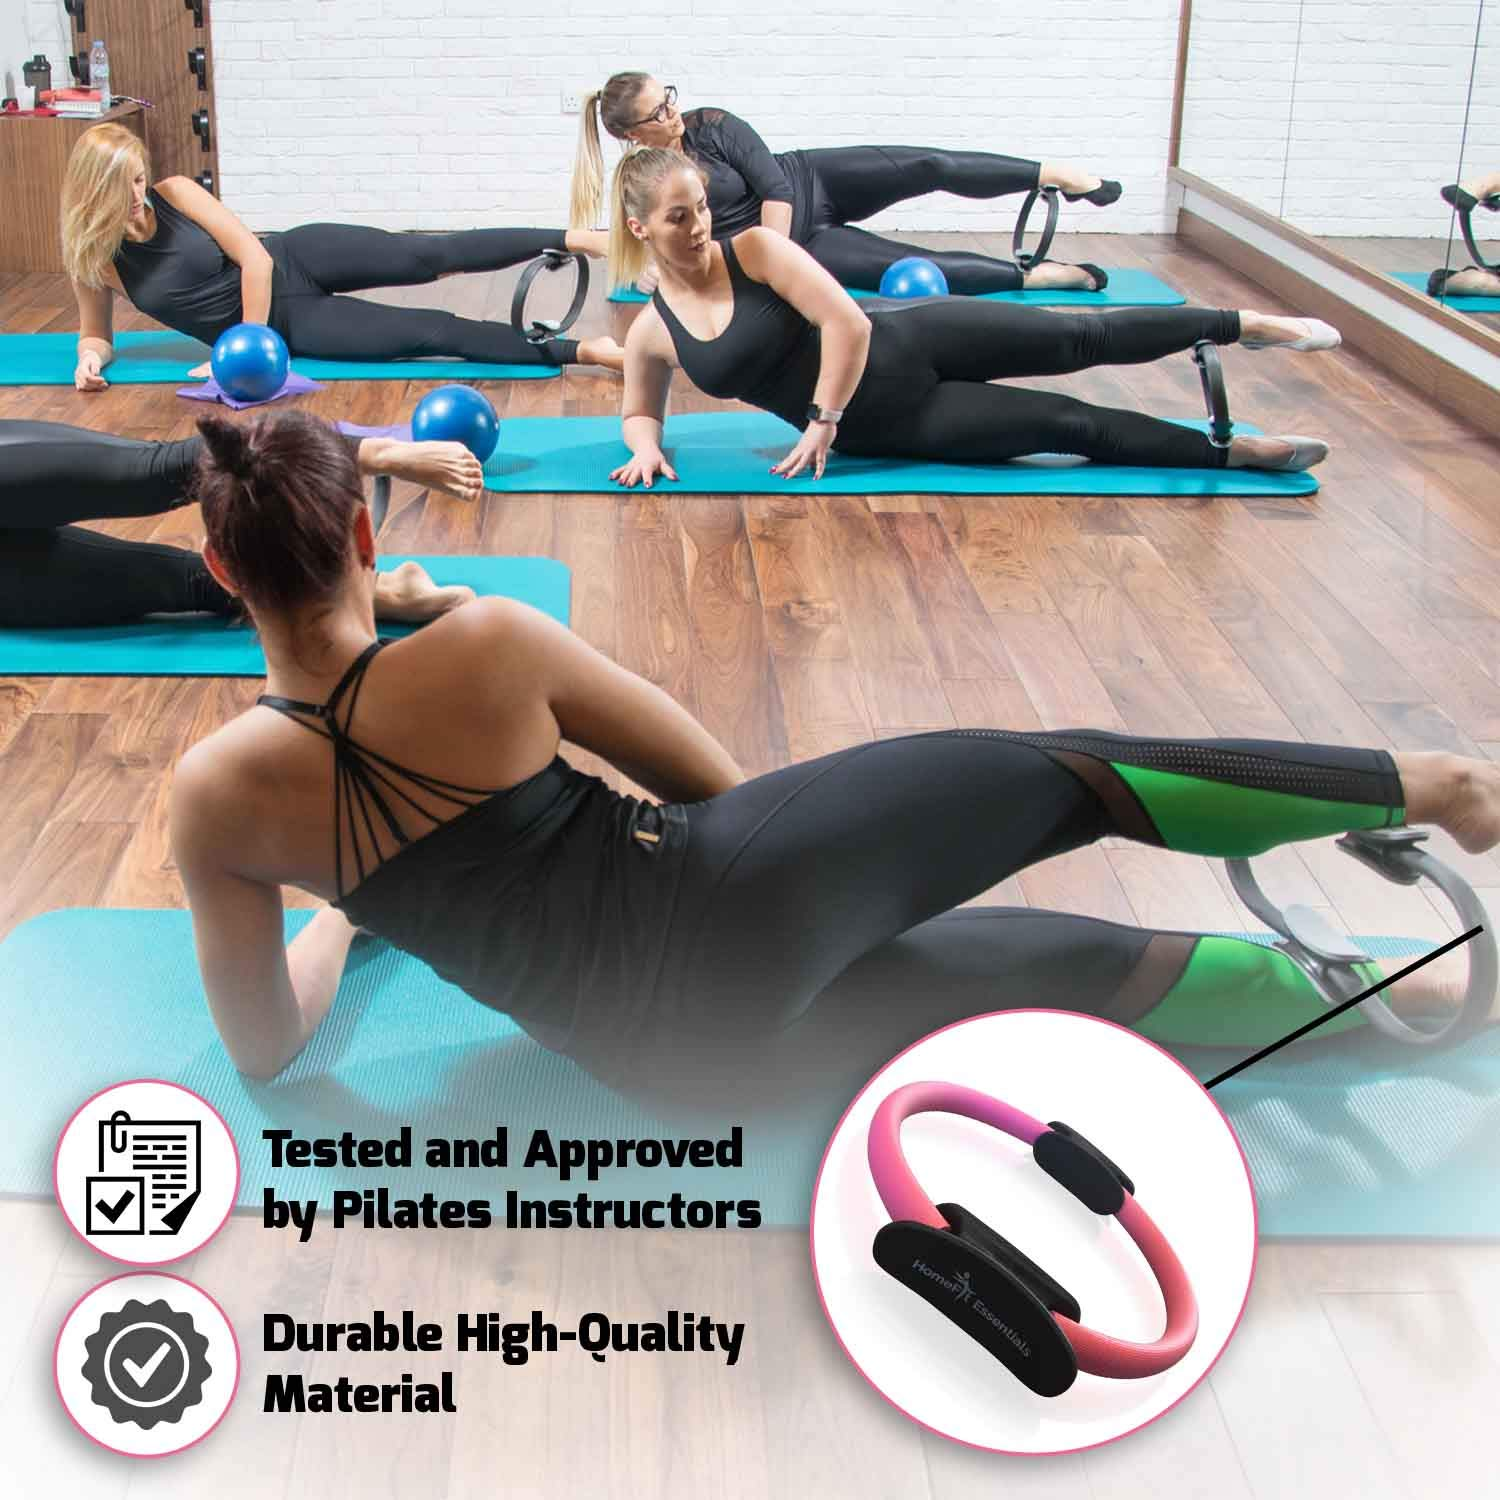 images Before You Choose Buy a Pilates Ring